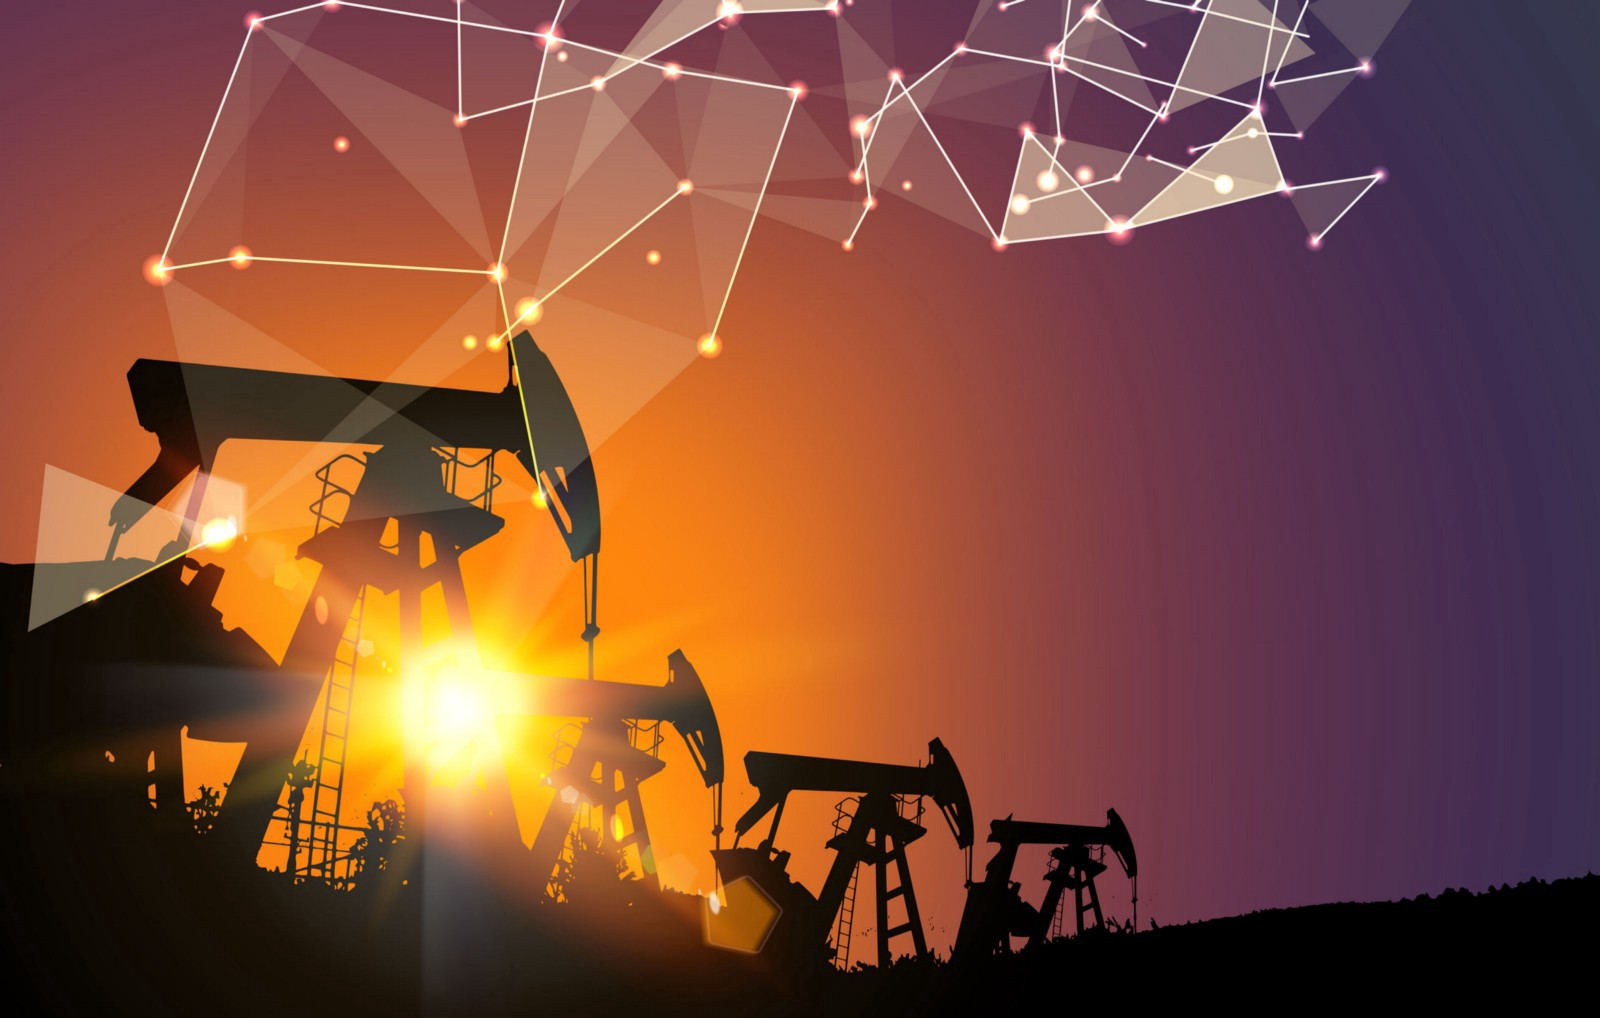 AI in Oil & Gas Market – Major Technology Giants in Buzz Again | Google, IBM, Accenture, Microsoft